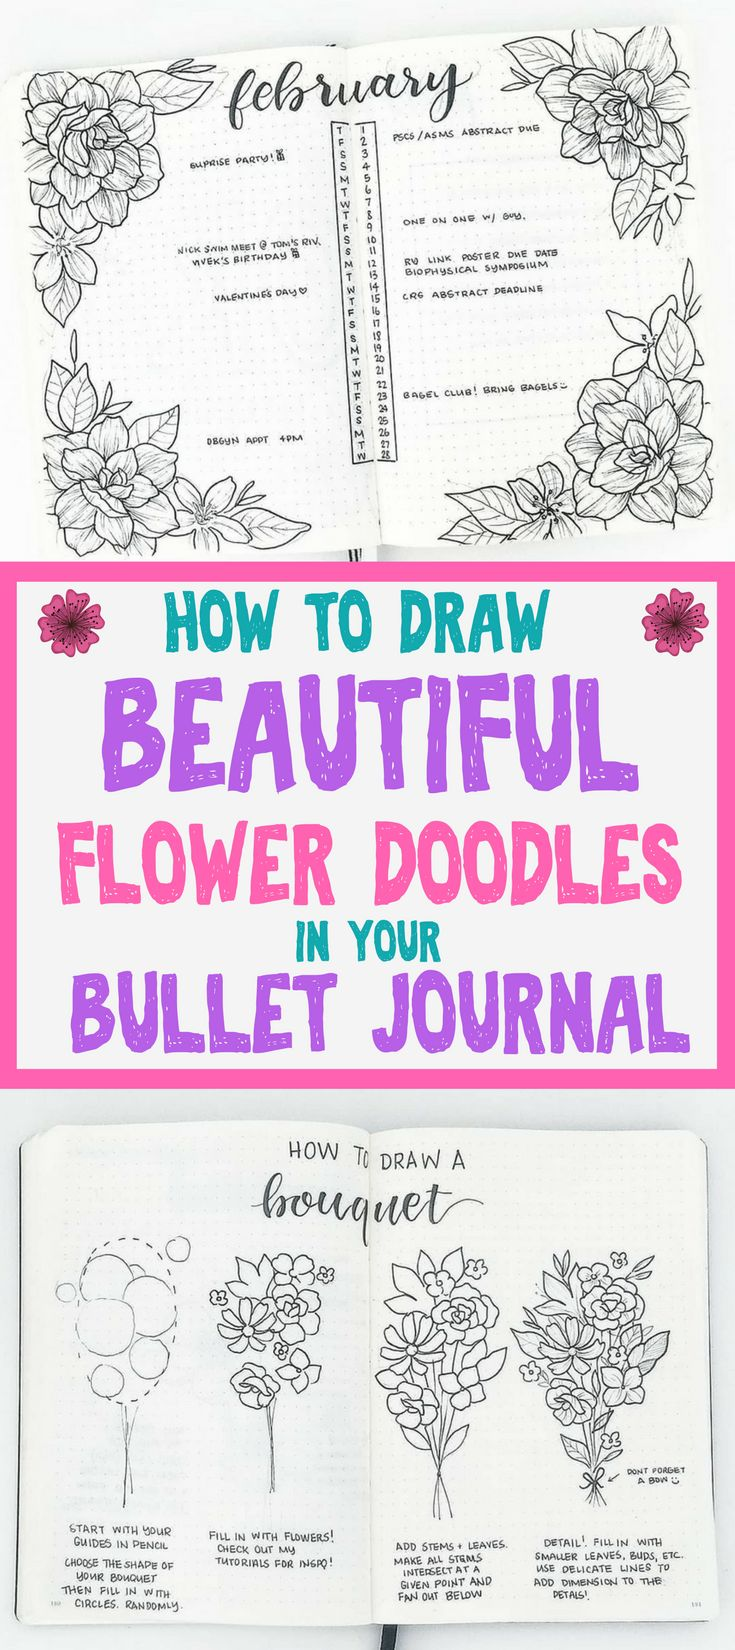 How to draw BEAUTIFUL flower doodles in your bullet journal. These flower doodles are amazingly easy and fun. These tutorials will teach how you to decorate your bullet journal with 15 different types of gorgeous flowers.